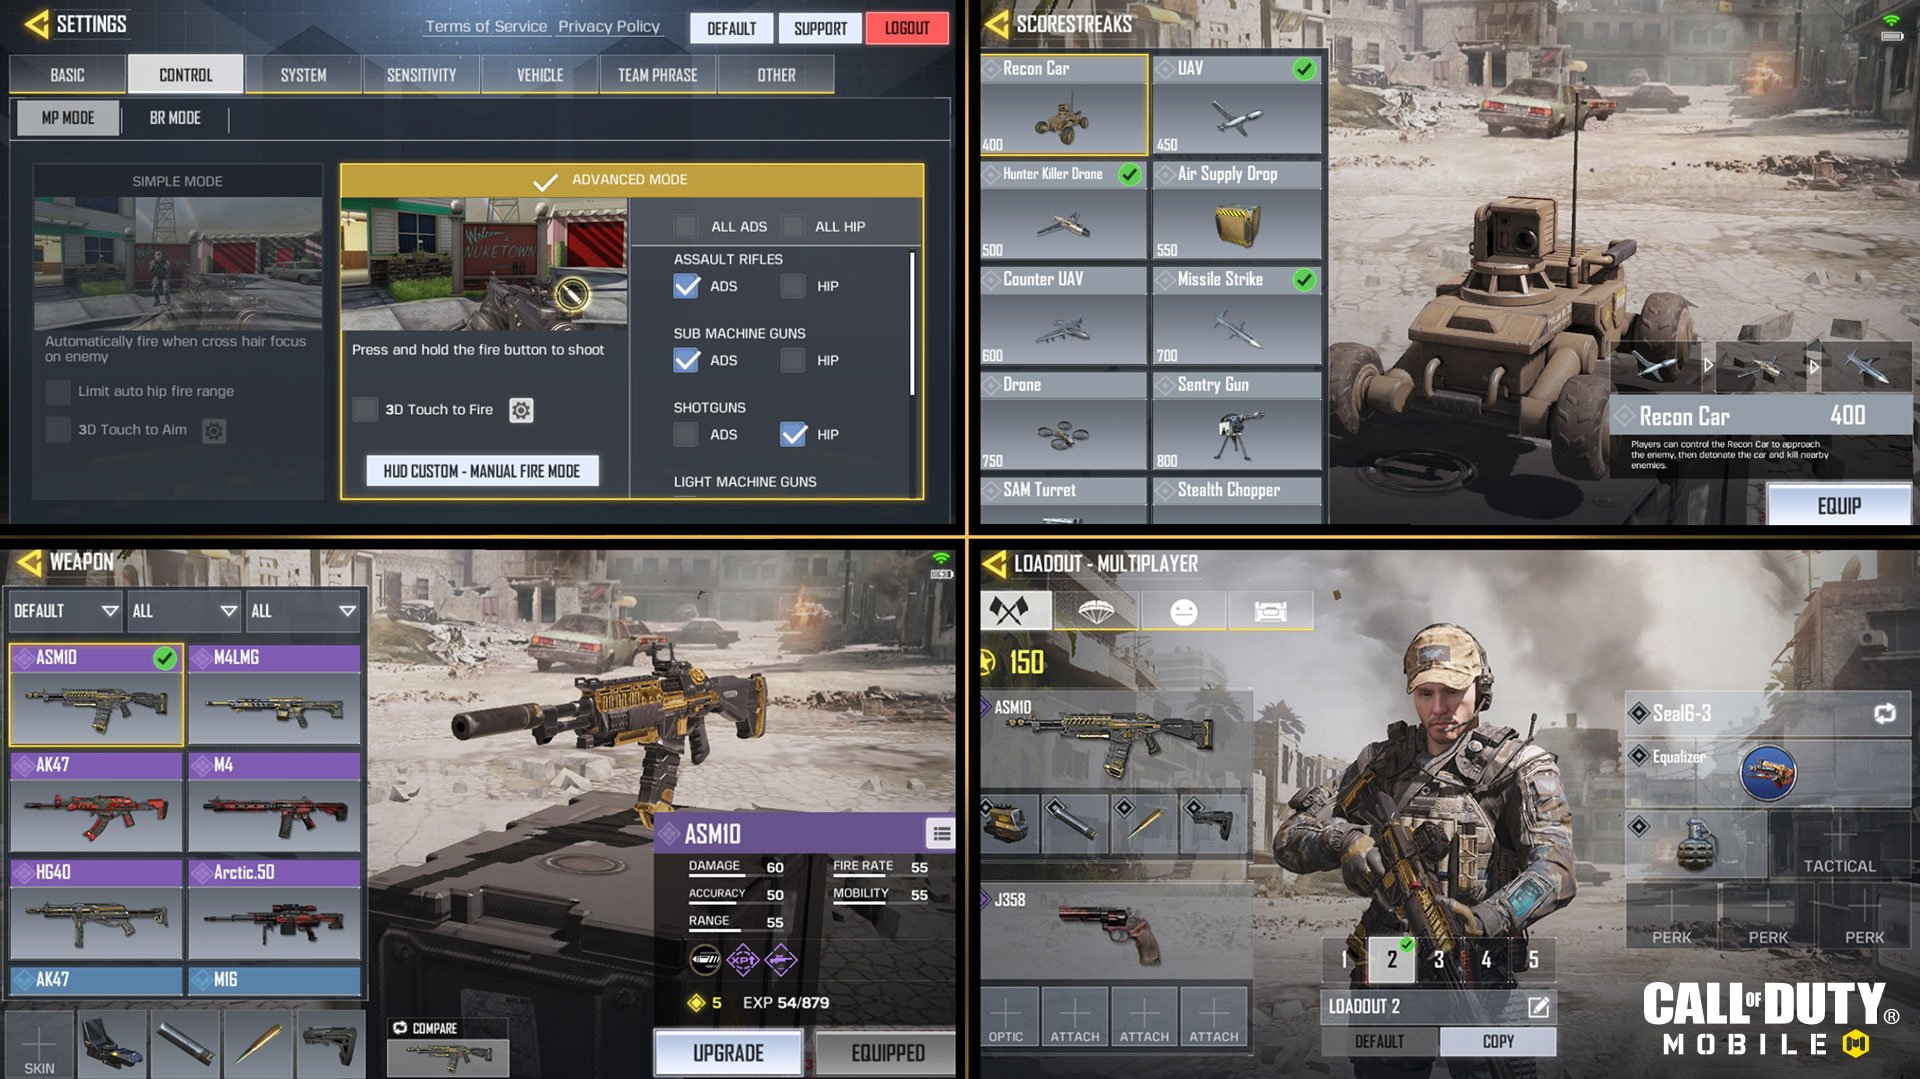 New Details On Call Of Duty Mobile Announced Including New Mp